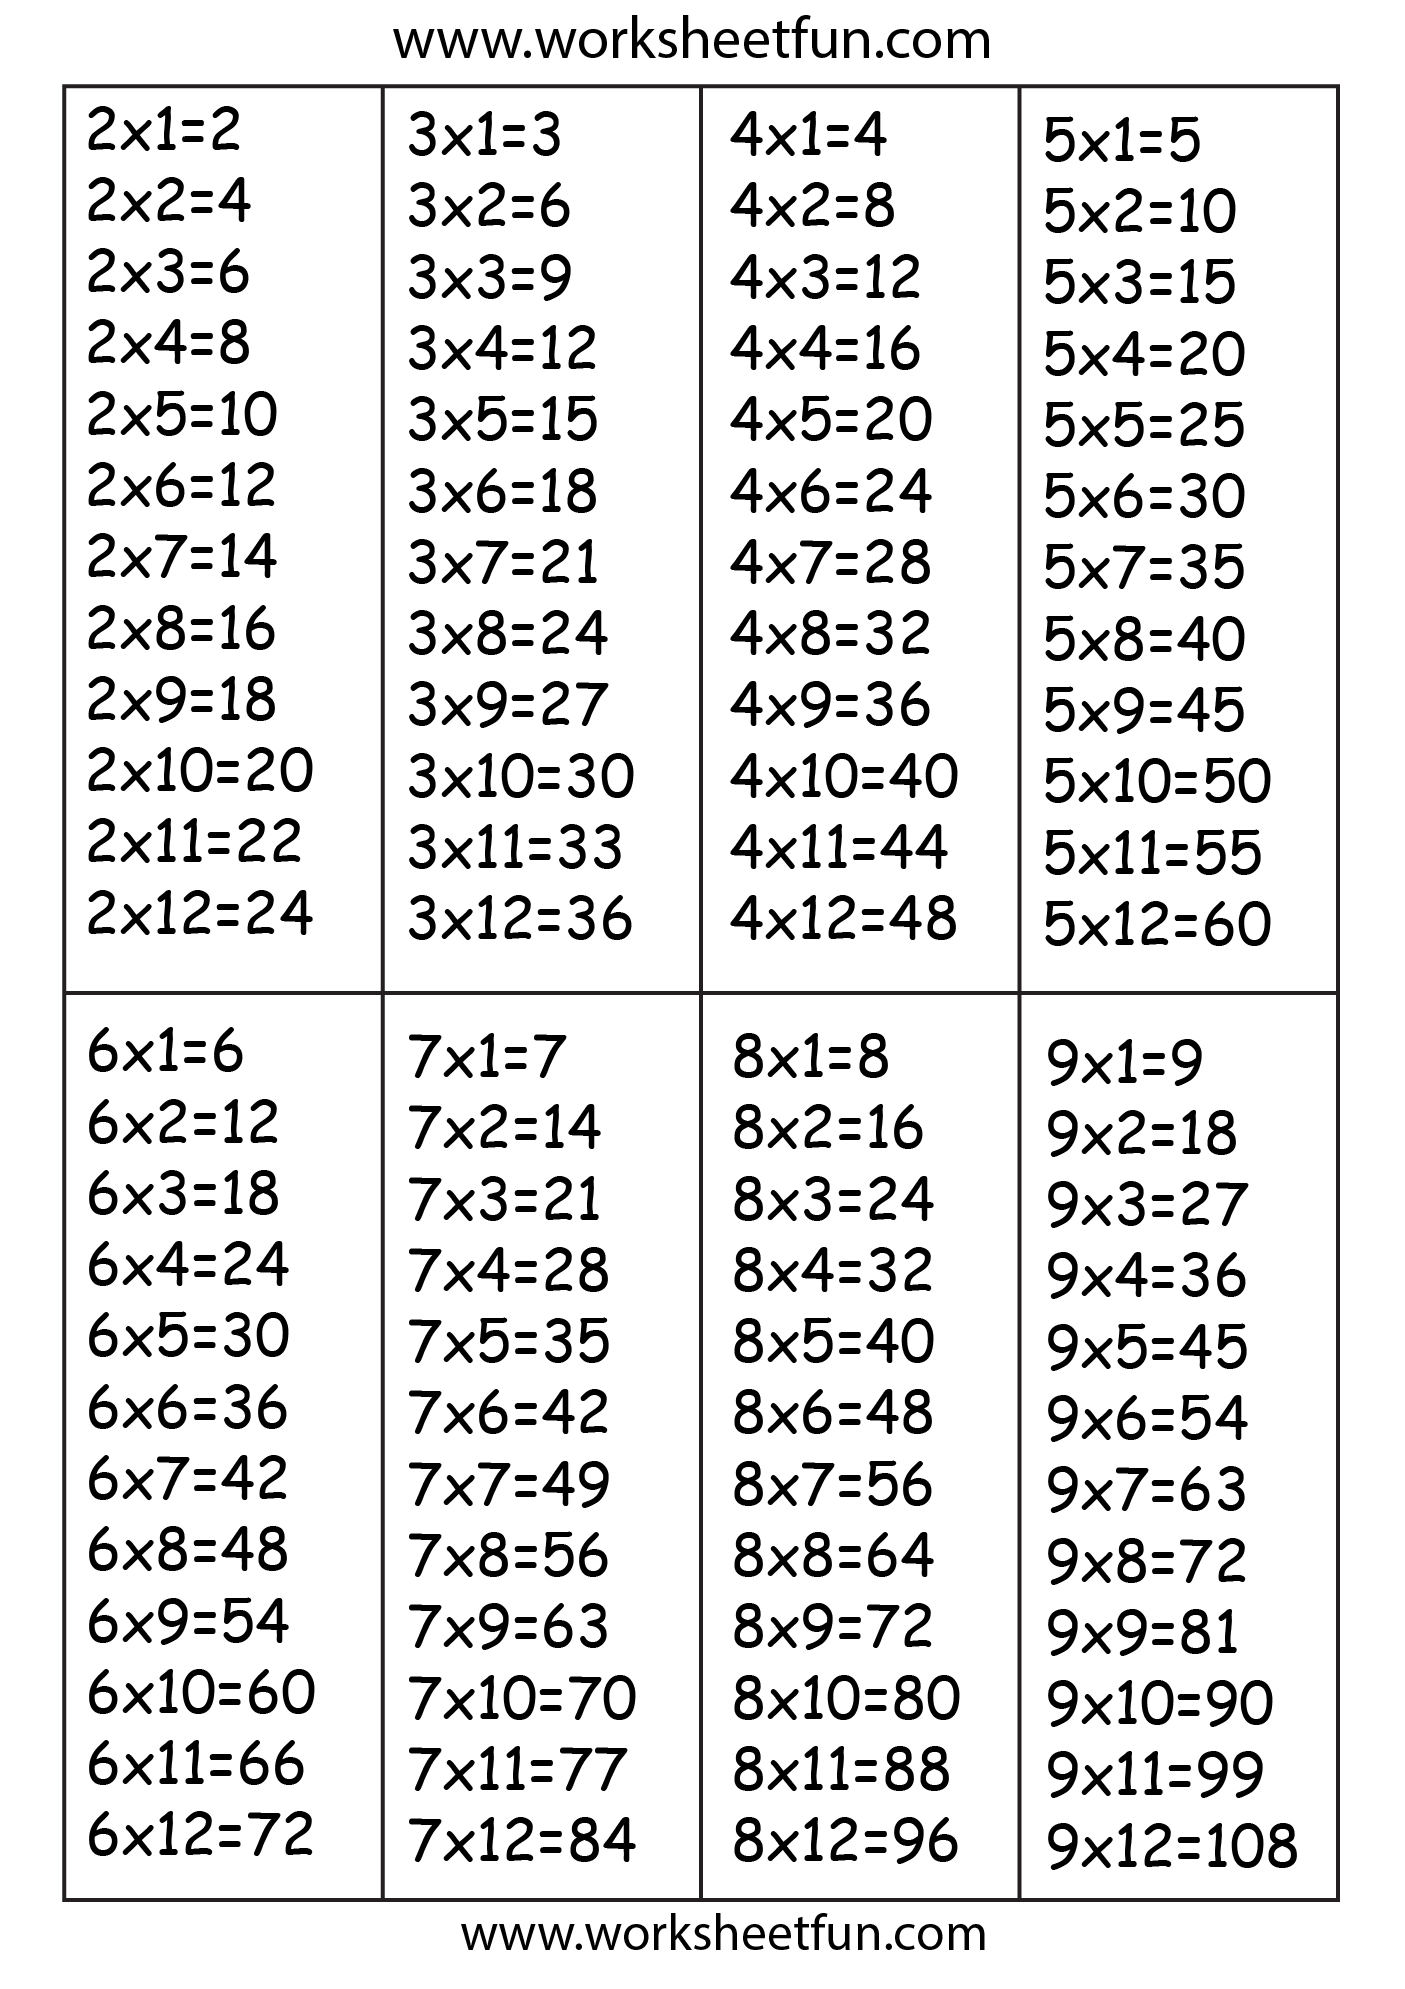 Times Table Chart 2 3 4 5 6 7 8 Amp 9 Free